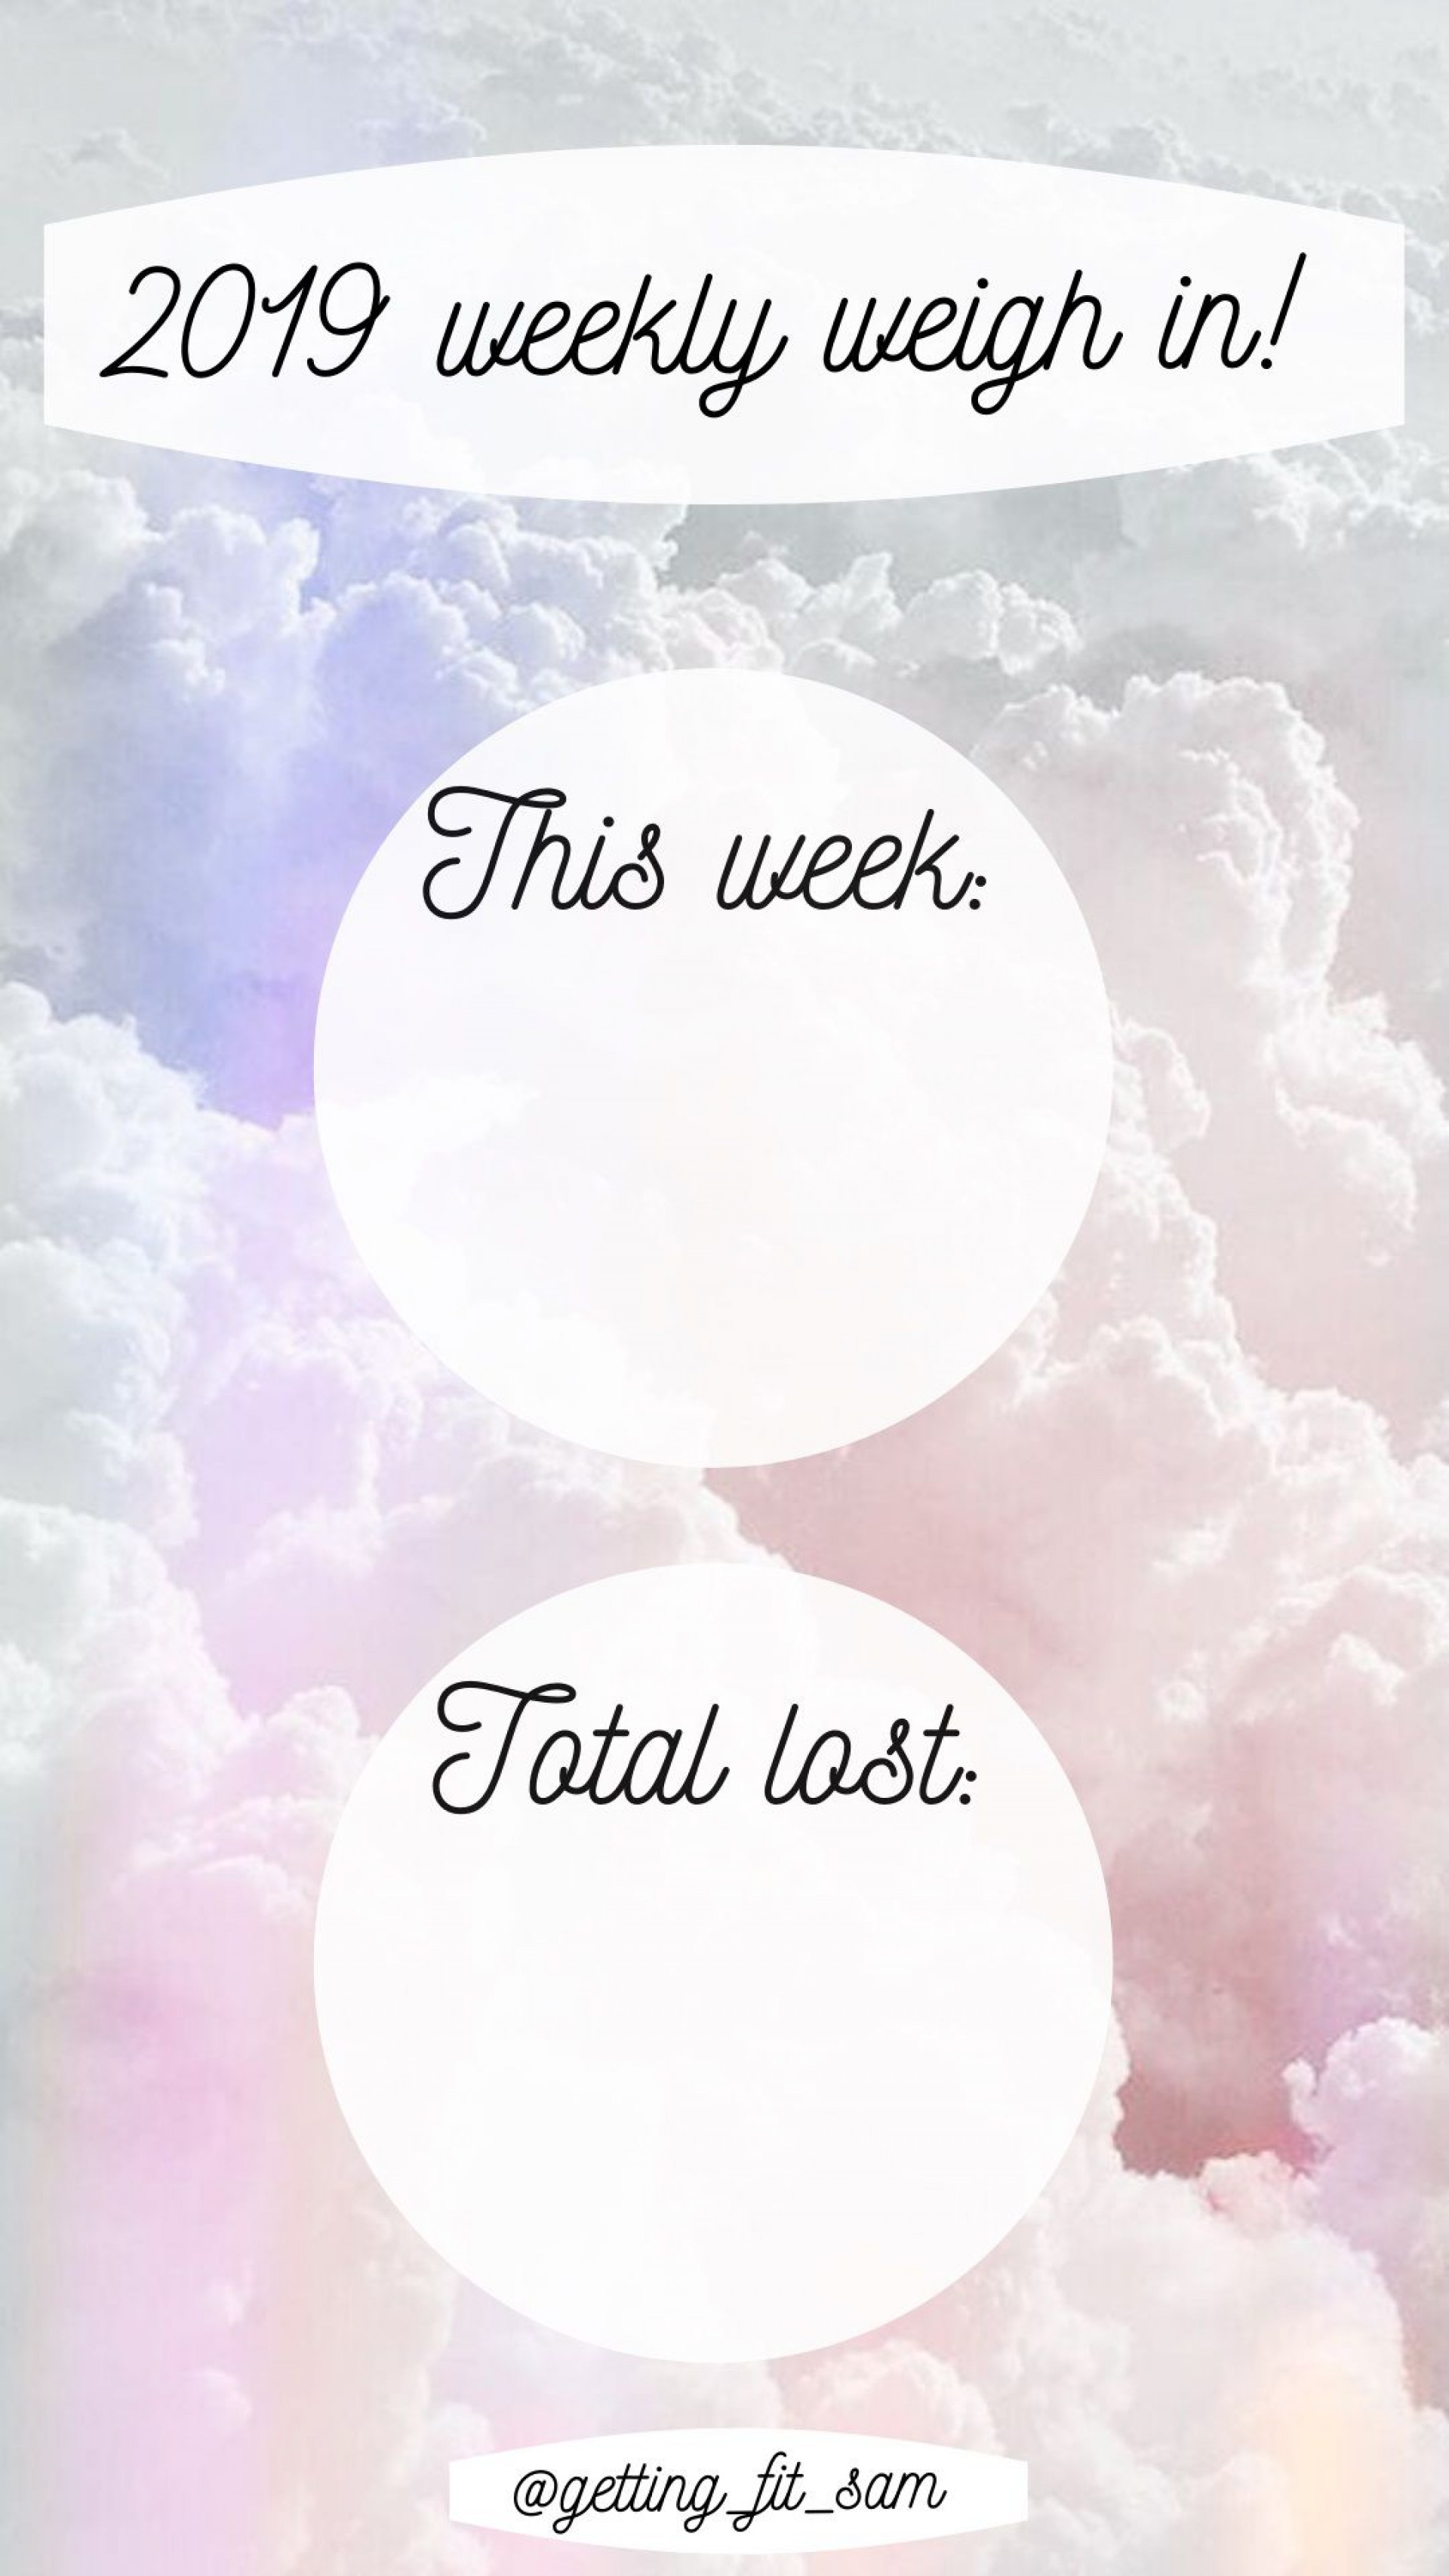 000 Amazing Weight Los Tracker Template Idea  Weekly In Thi Body I Live Instagram 2019 20201920